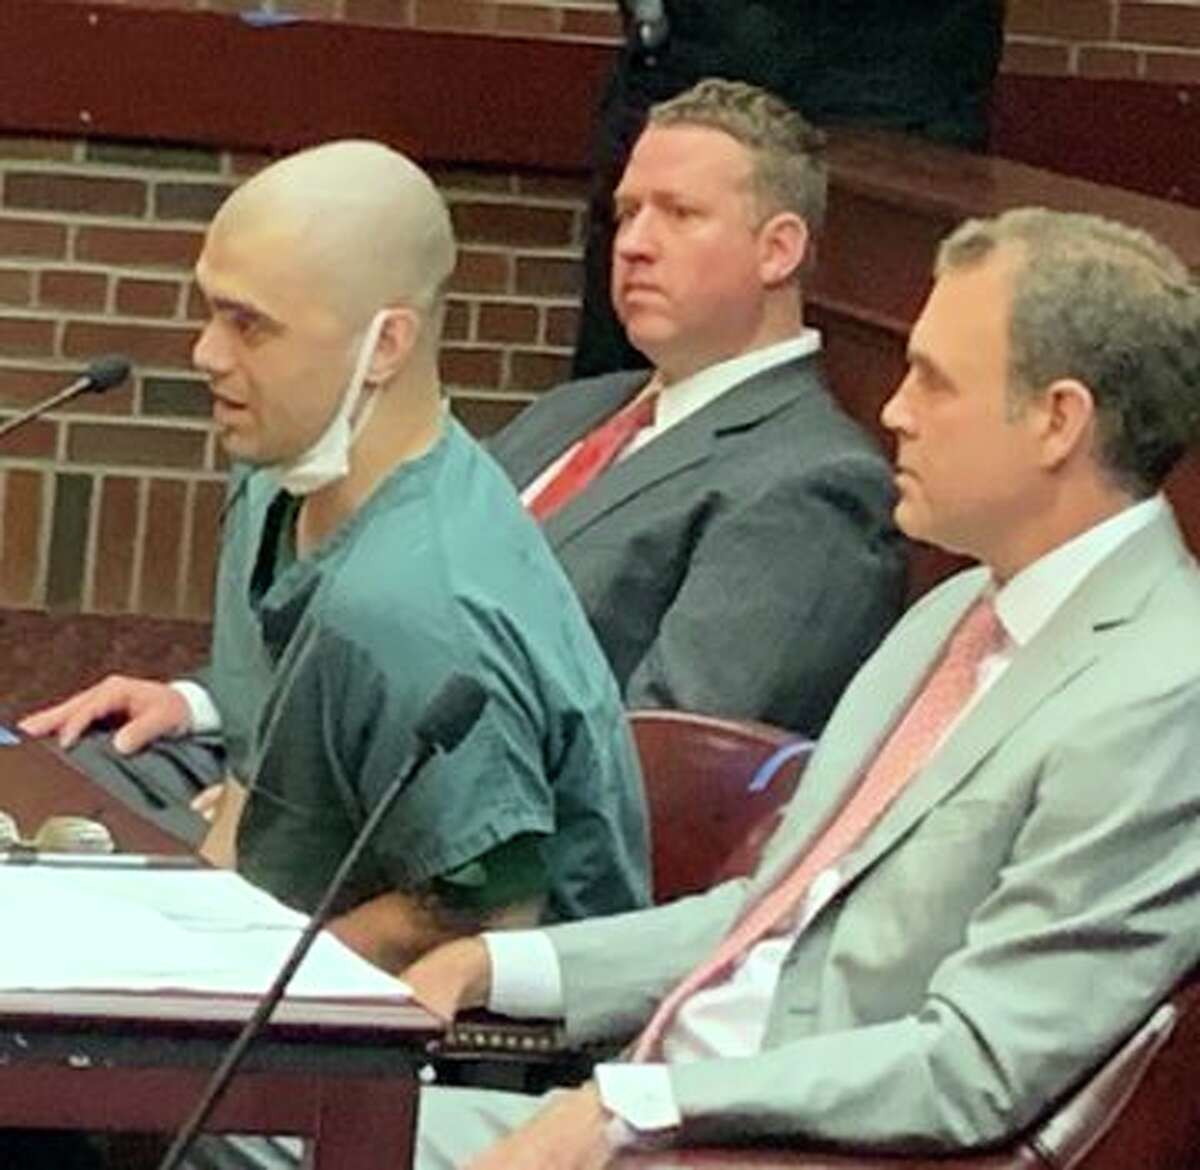 Jimmy Duffy, center, speaks in a Saratoga County court room Wednesday as Judge James A. Murphy III sentenced him to 18 years to life in prison Wednesday for his role in the savage 2019 bludgeoning of 22-year-old Allyzibeth Lamont in a Johnstown deli.